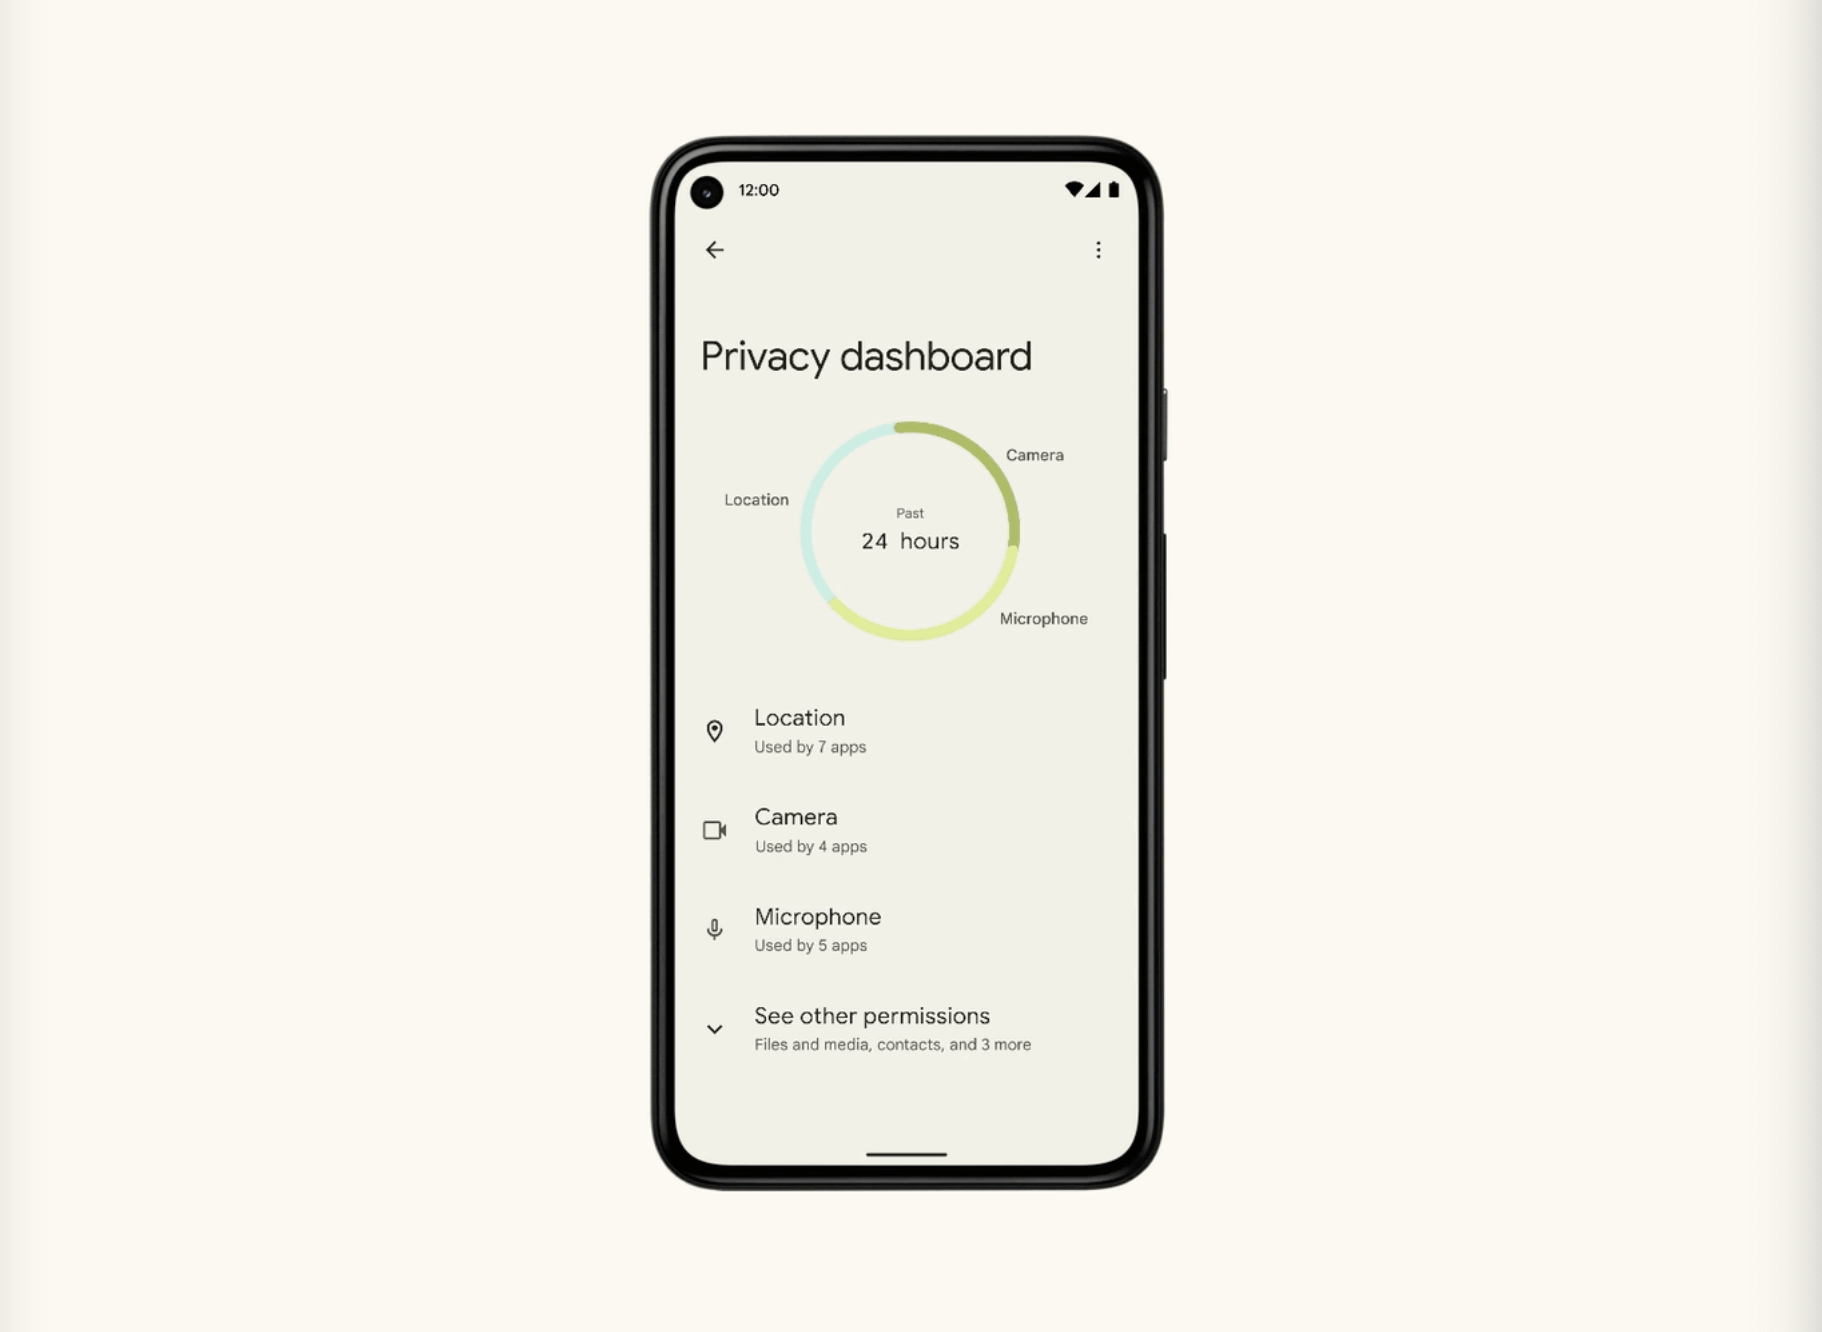 Android 12 beta 2 Privacy Dashboard